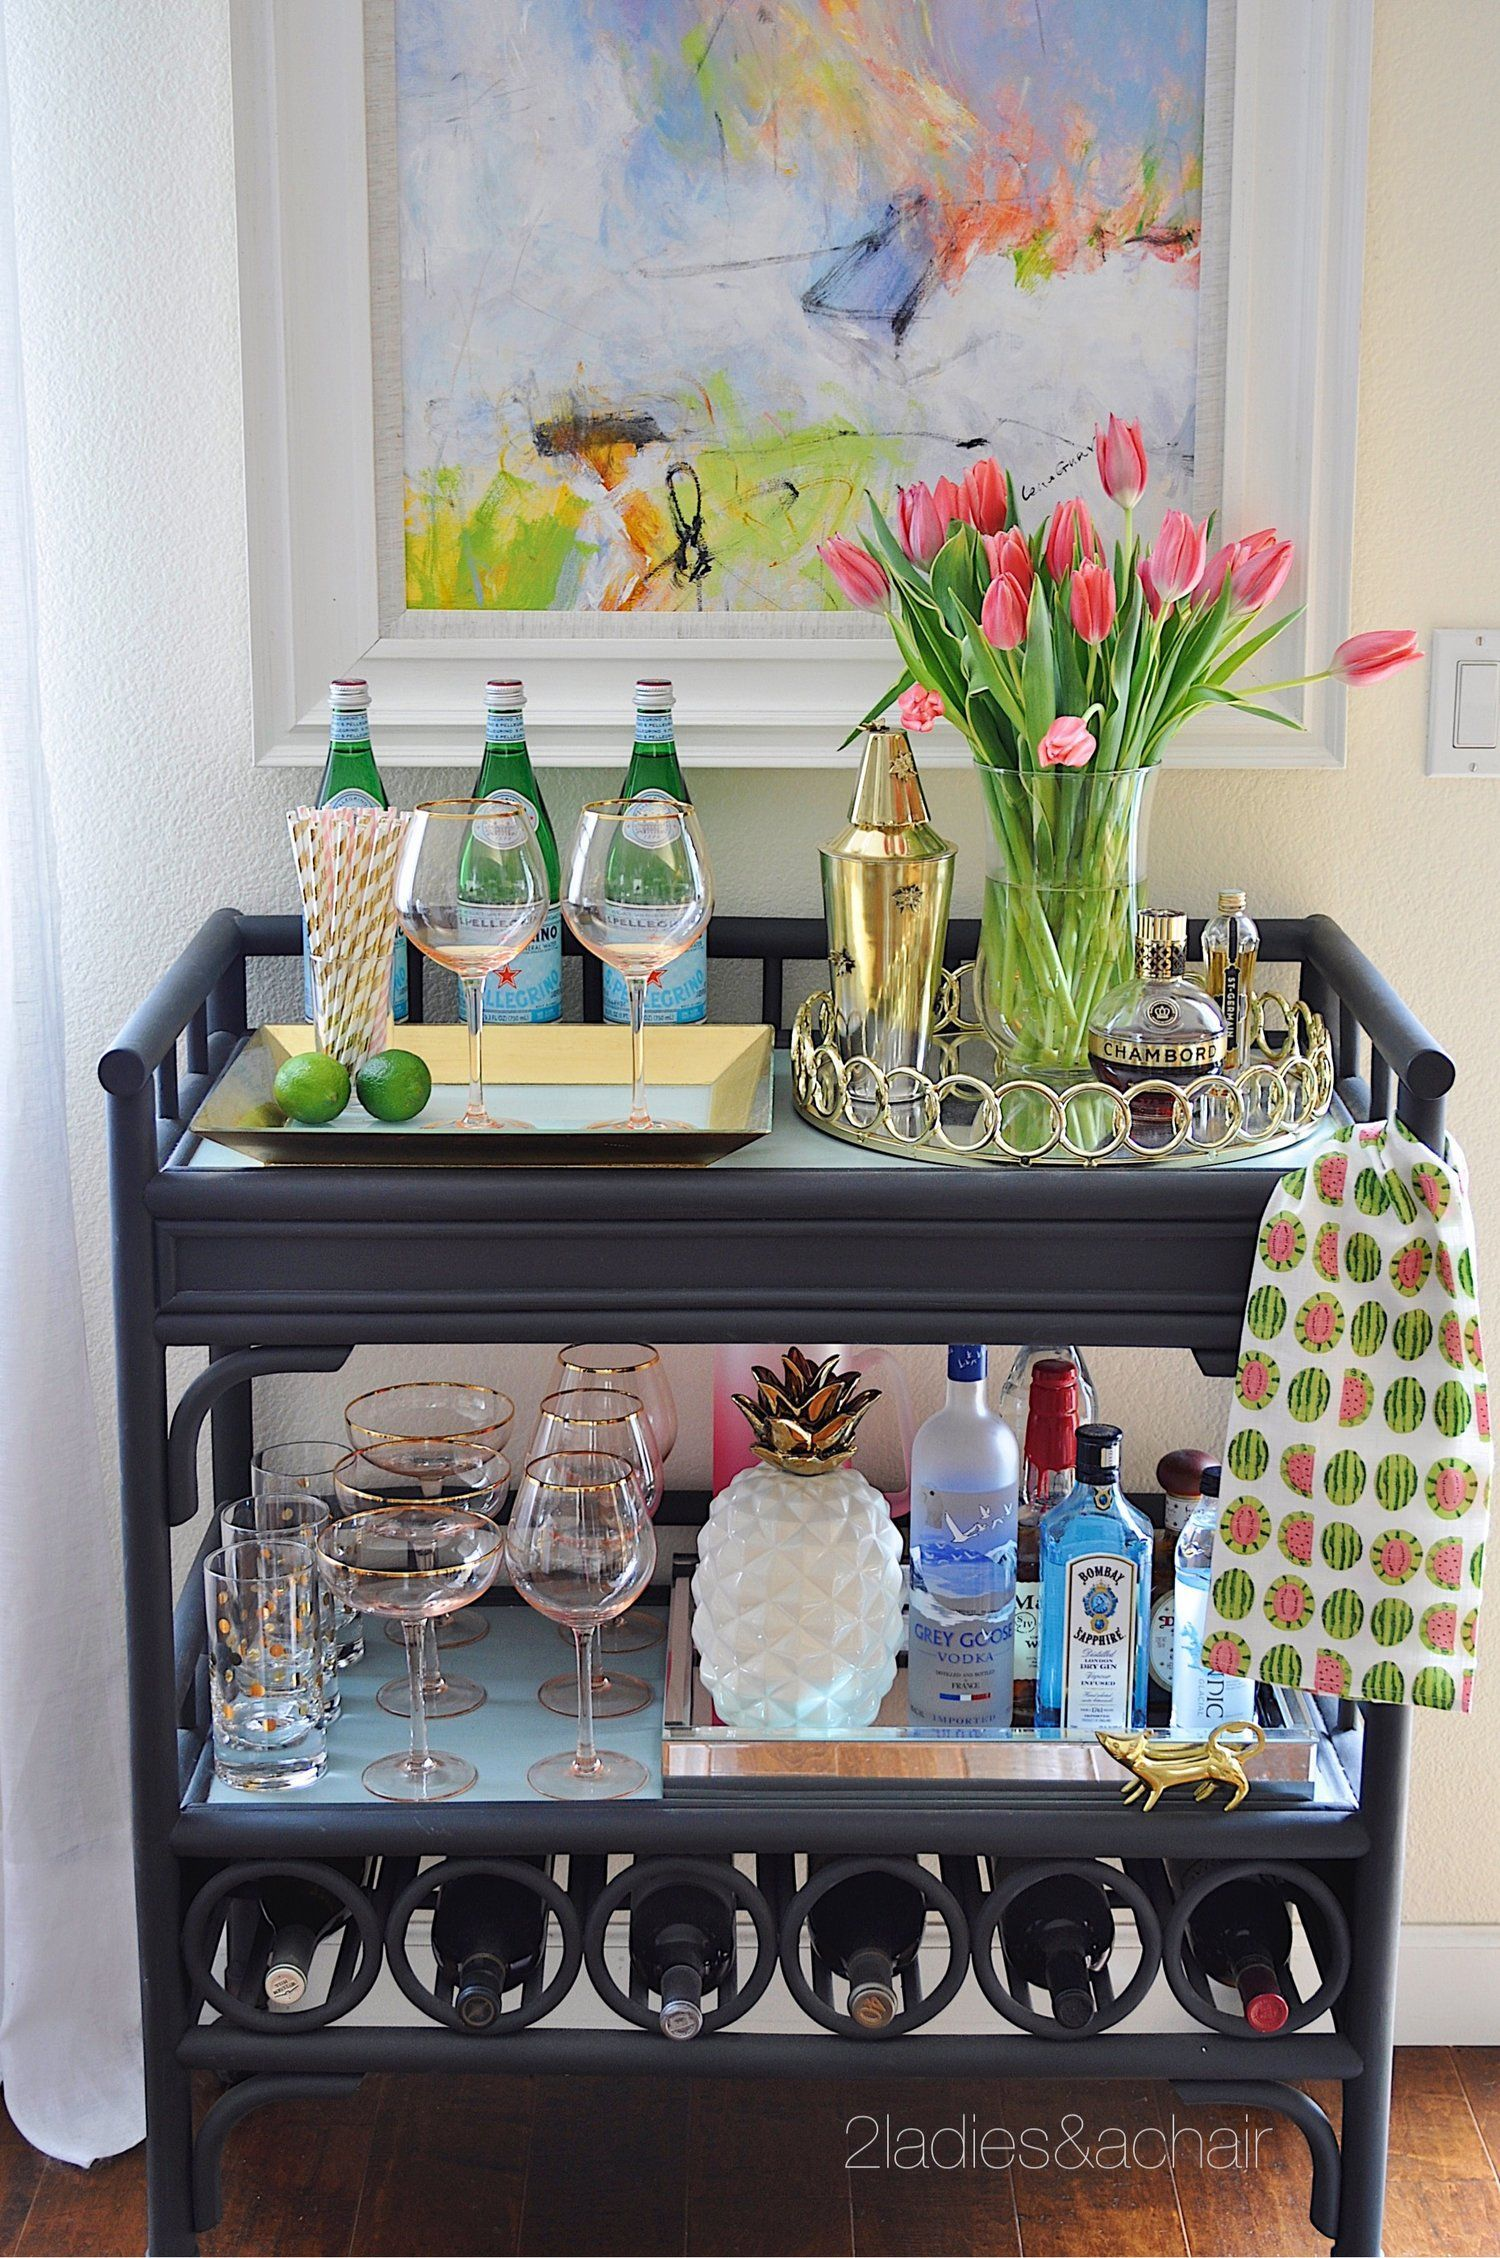 Pink Tulips With This Beautiful Blush Glware From Homegoods Has The Bar Cart Ready For A Spring Party Sponsored By